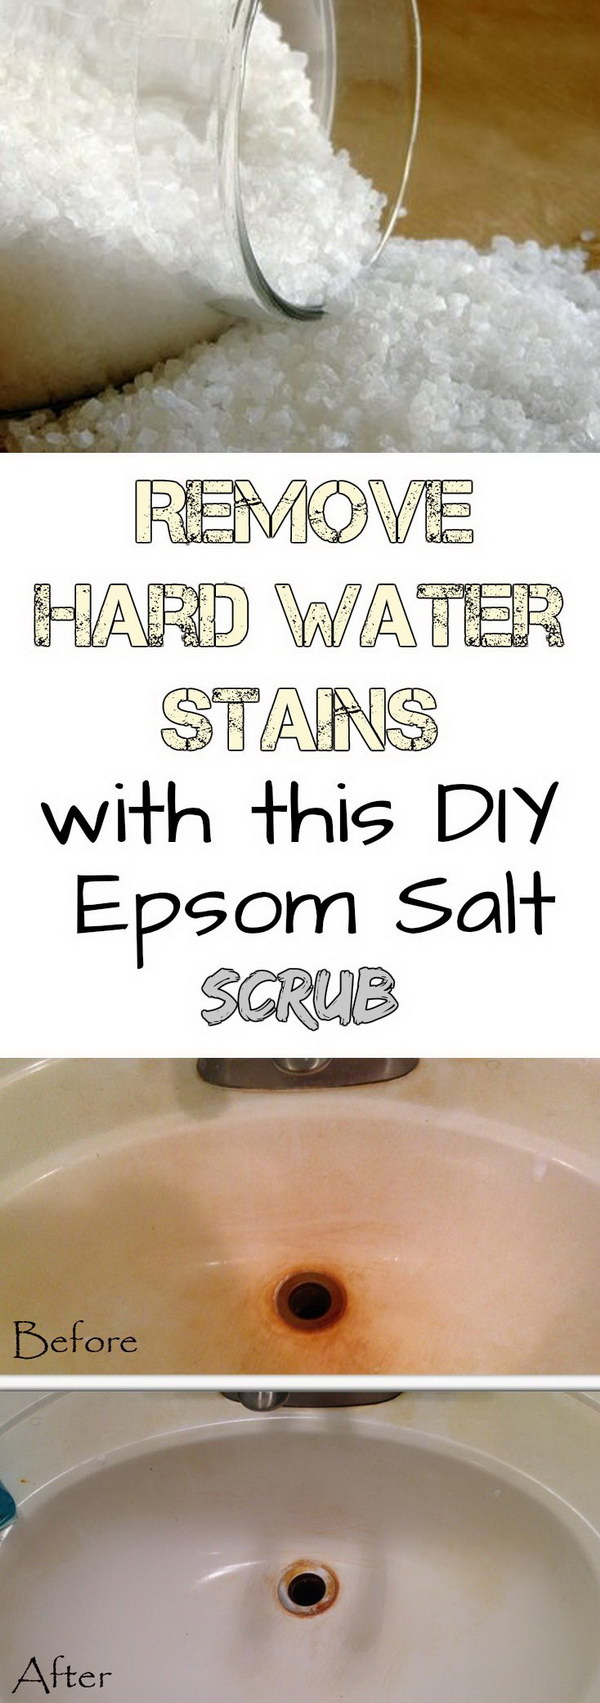 Remove Hard Water Stains with This DIY Epsom Salt Scrub.